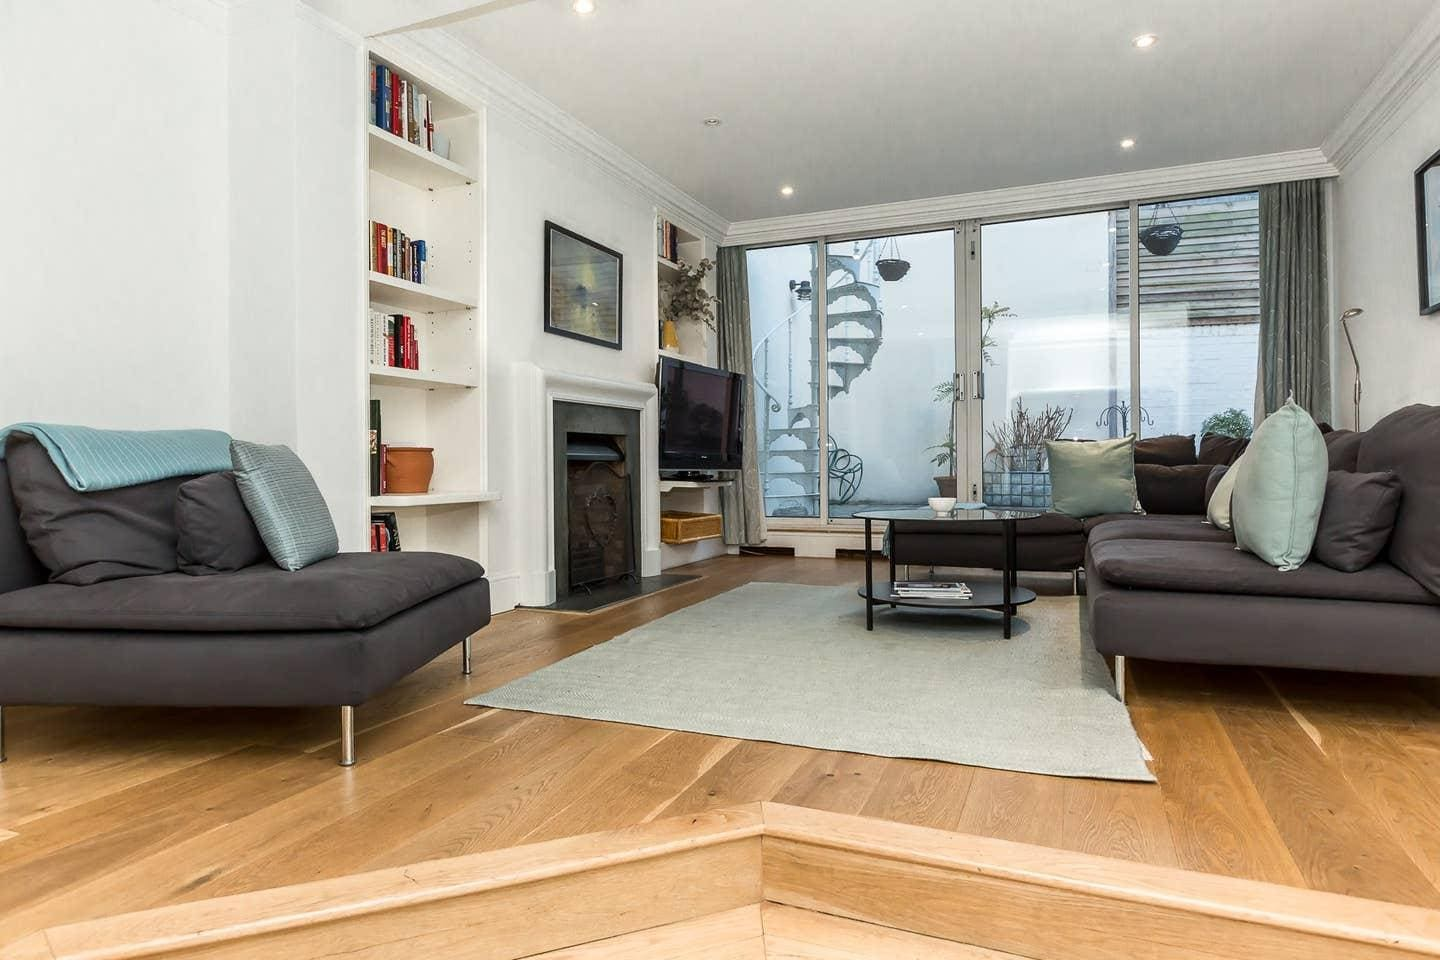 Property Image 2 - Exquisite 3 Bedroom House with Terrace in Knightsbridge